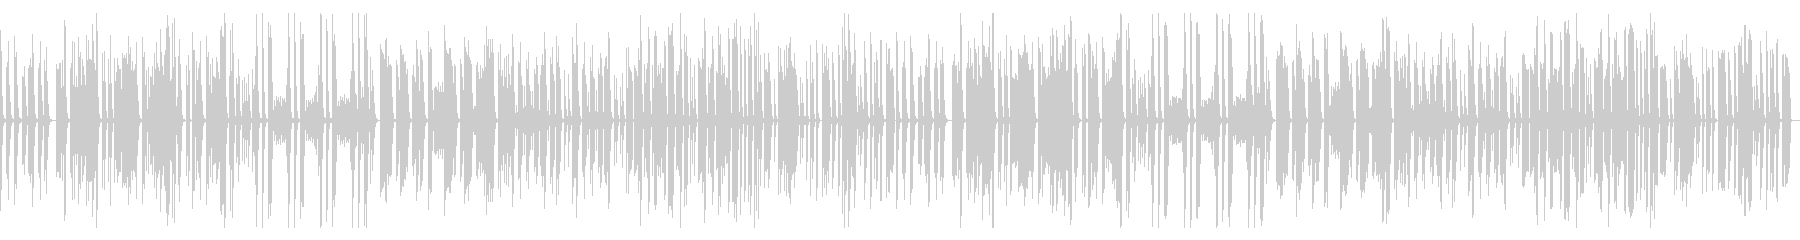 Slow and simple comical song's unreproduced waveform